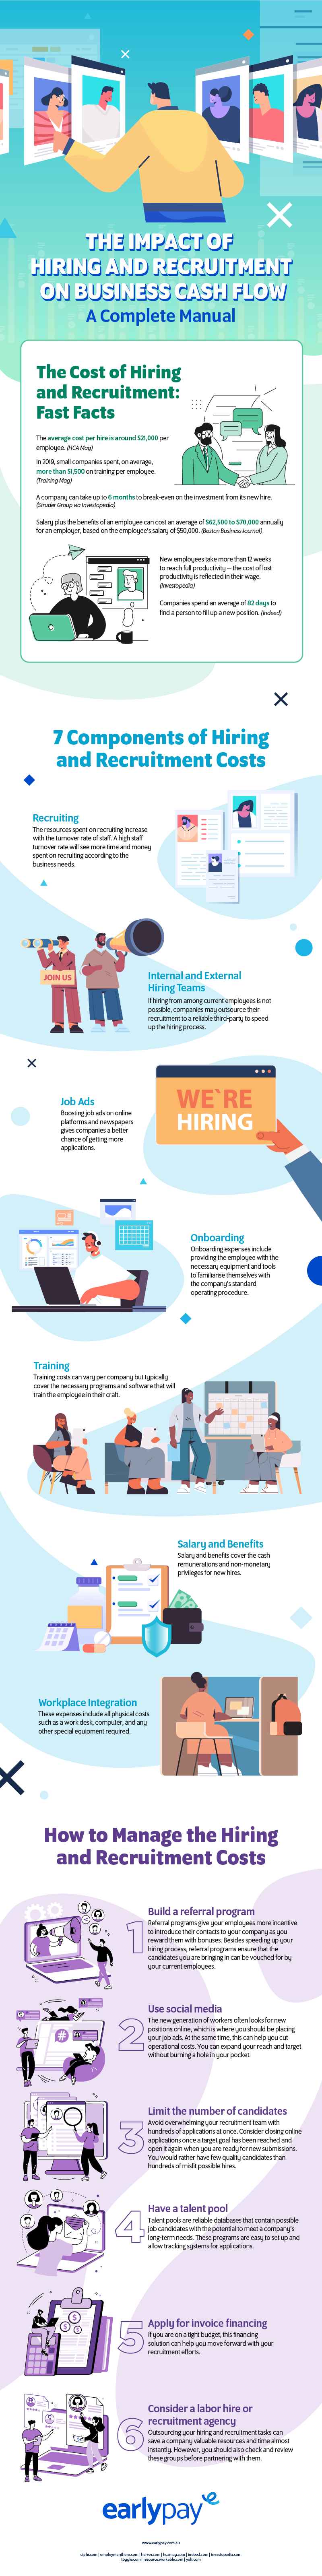 The Impact of Hiring and Recruitment on Business Cash Flow Infographic